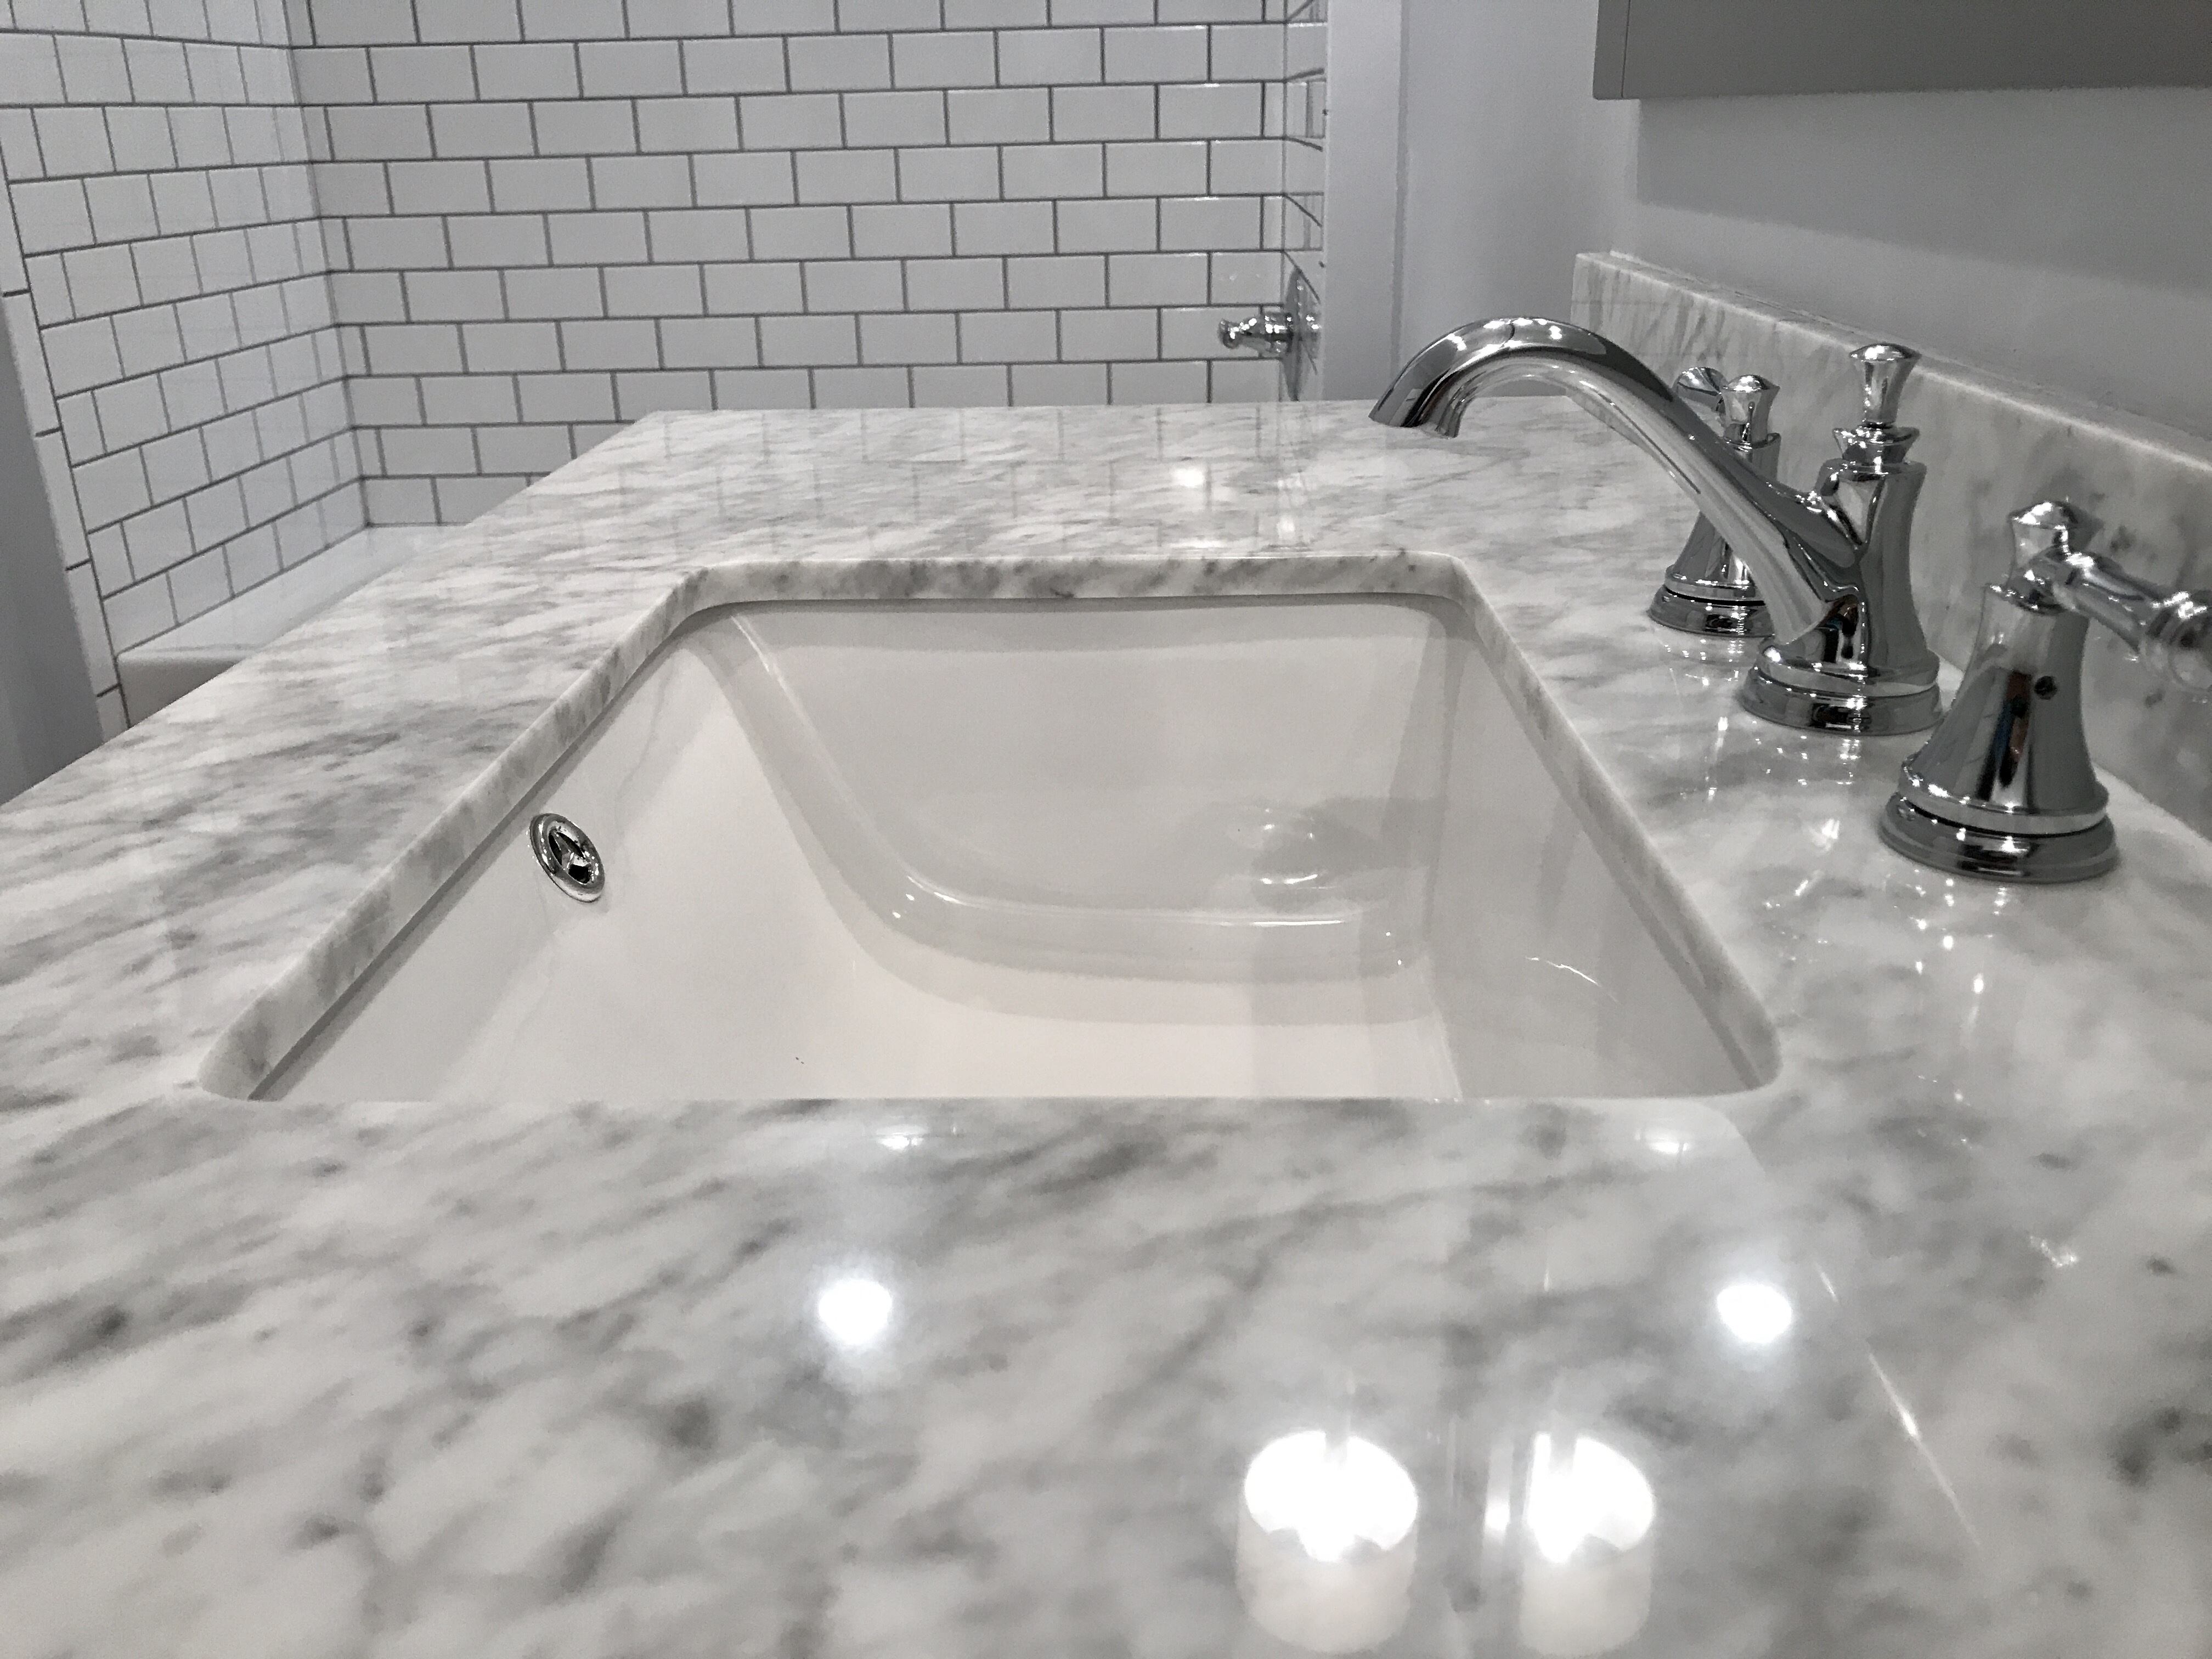 A top and faucet detail